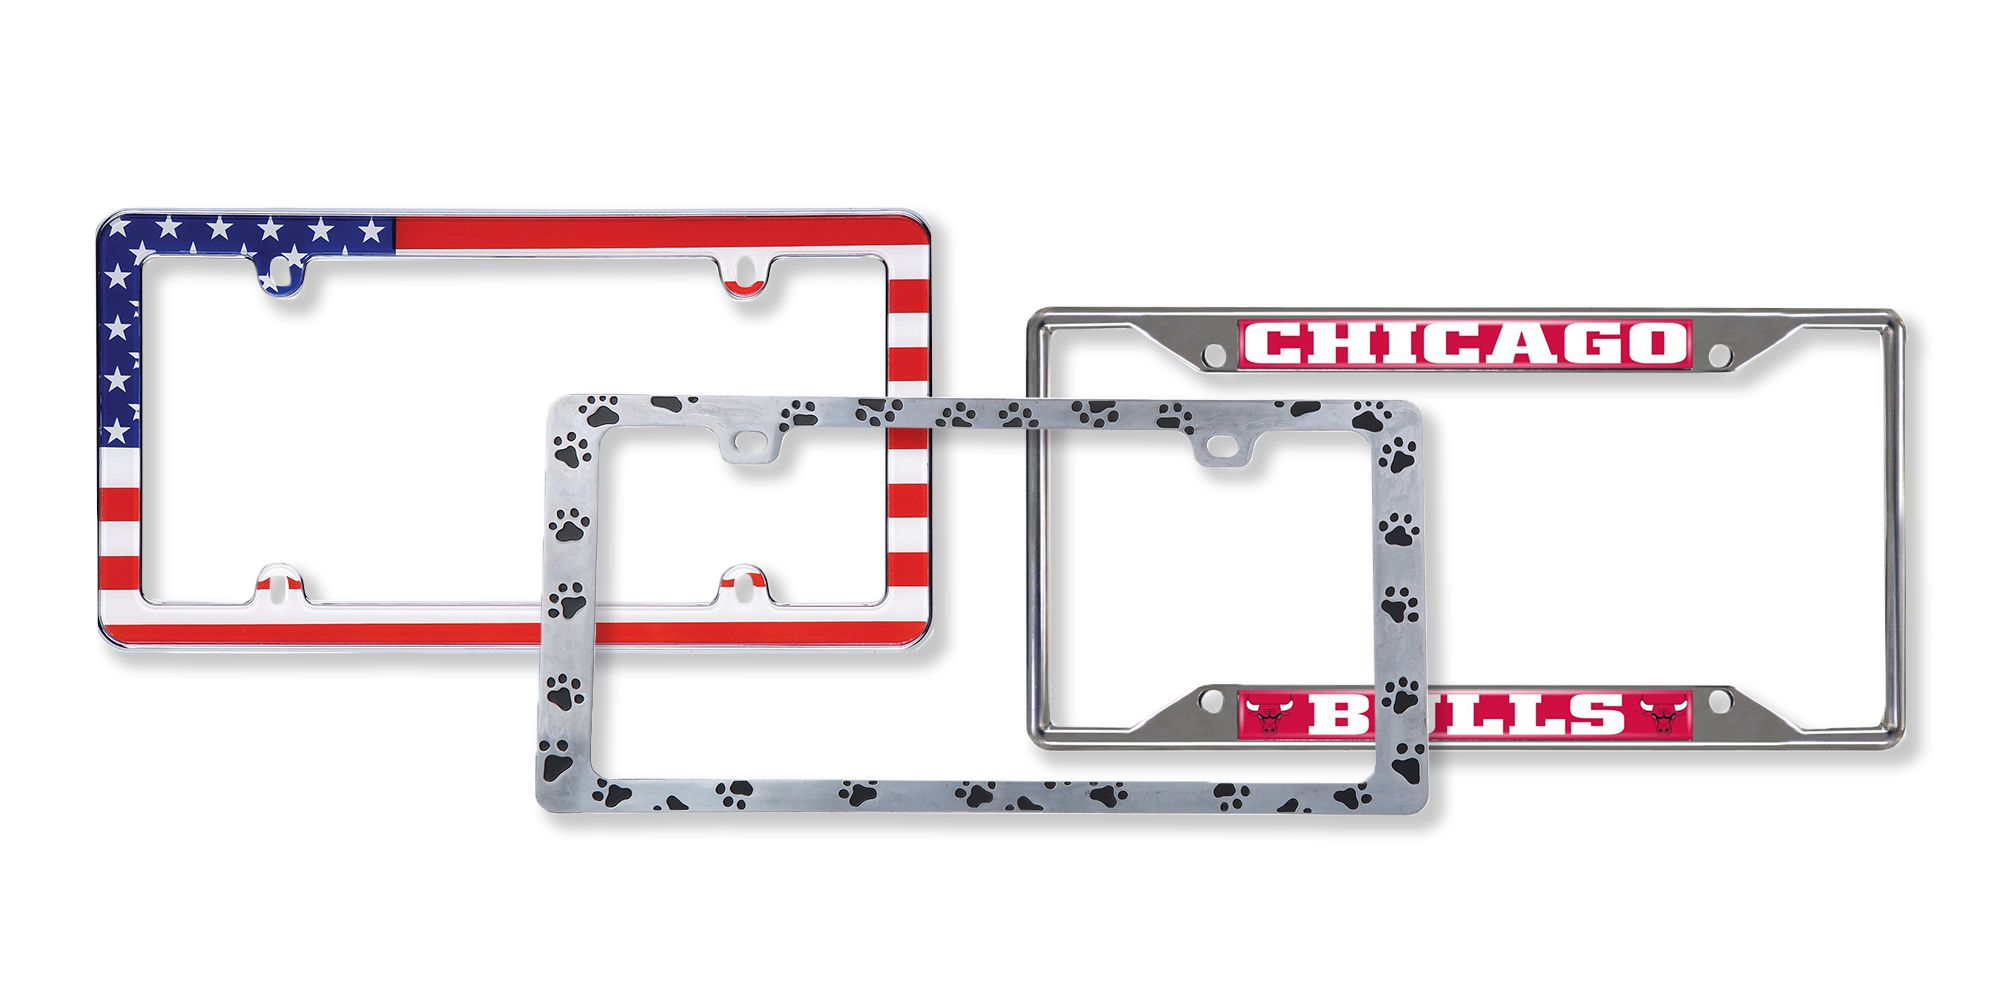 9 Best License Plate Frames in 2018 - License Plate Frames and Covers